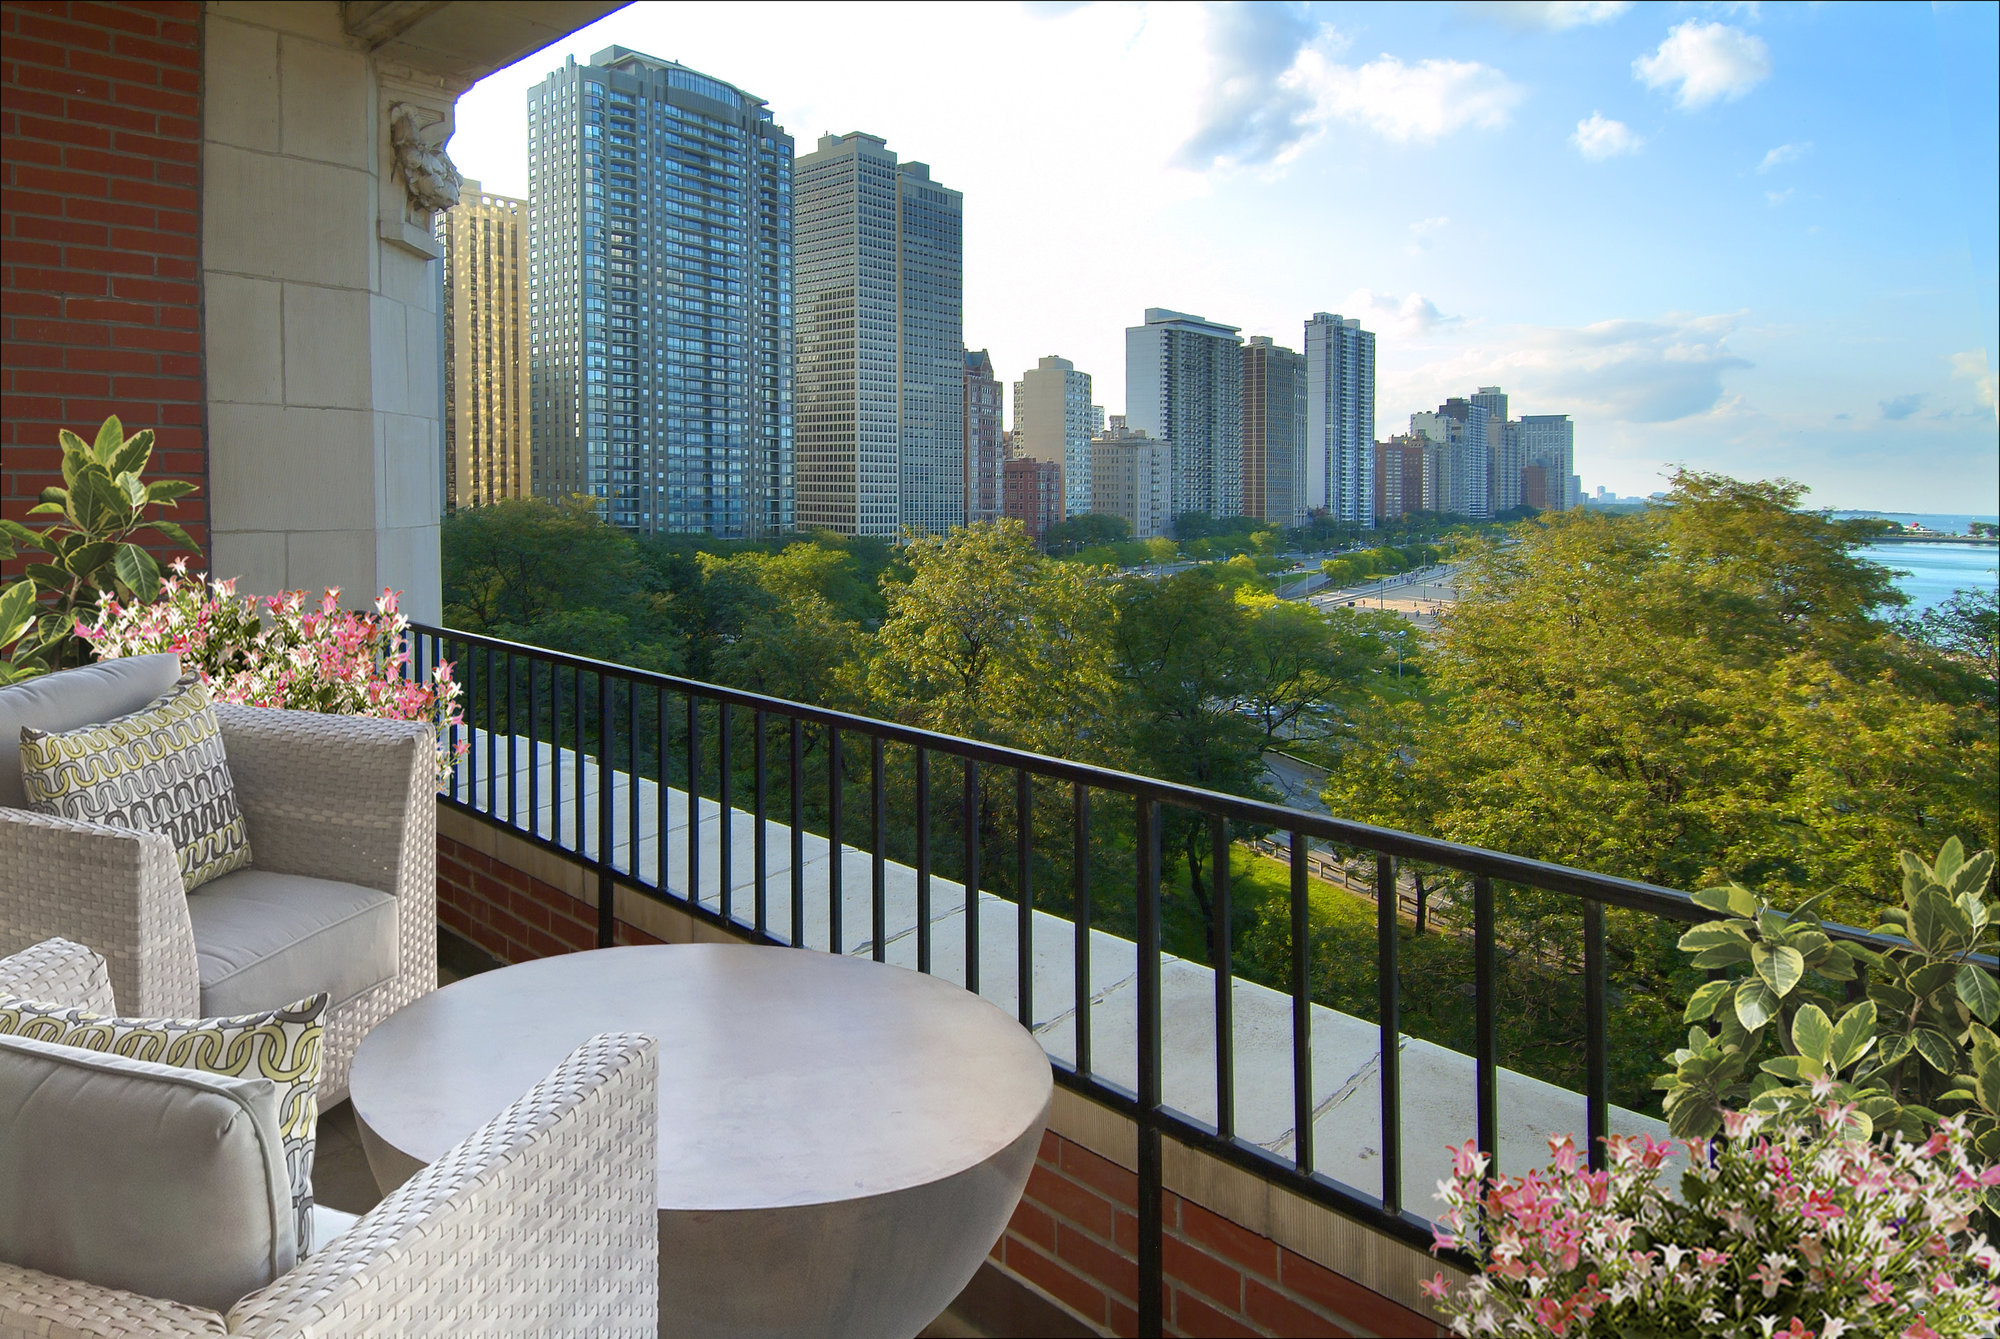 Streeterville condos with private balconies